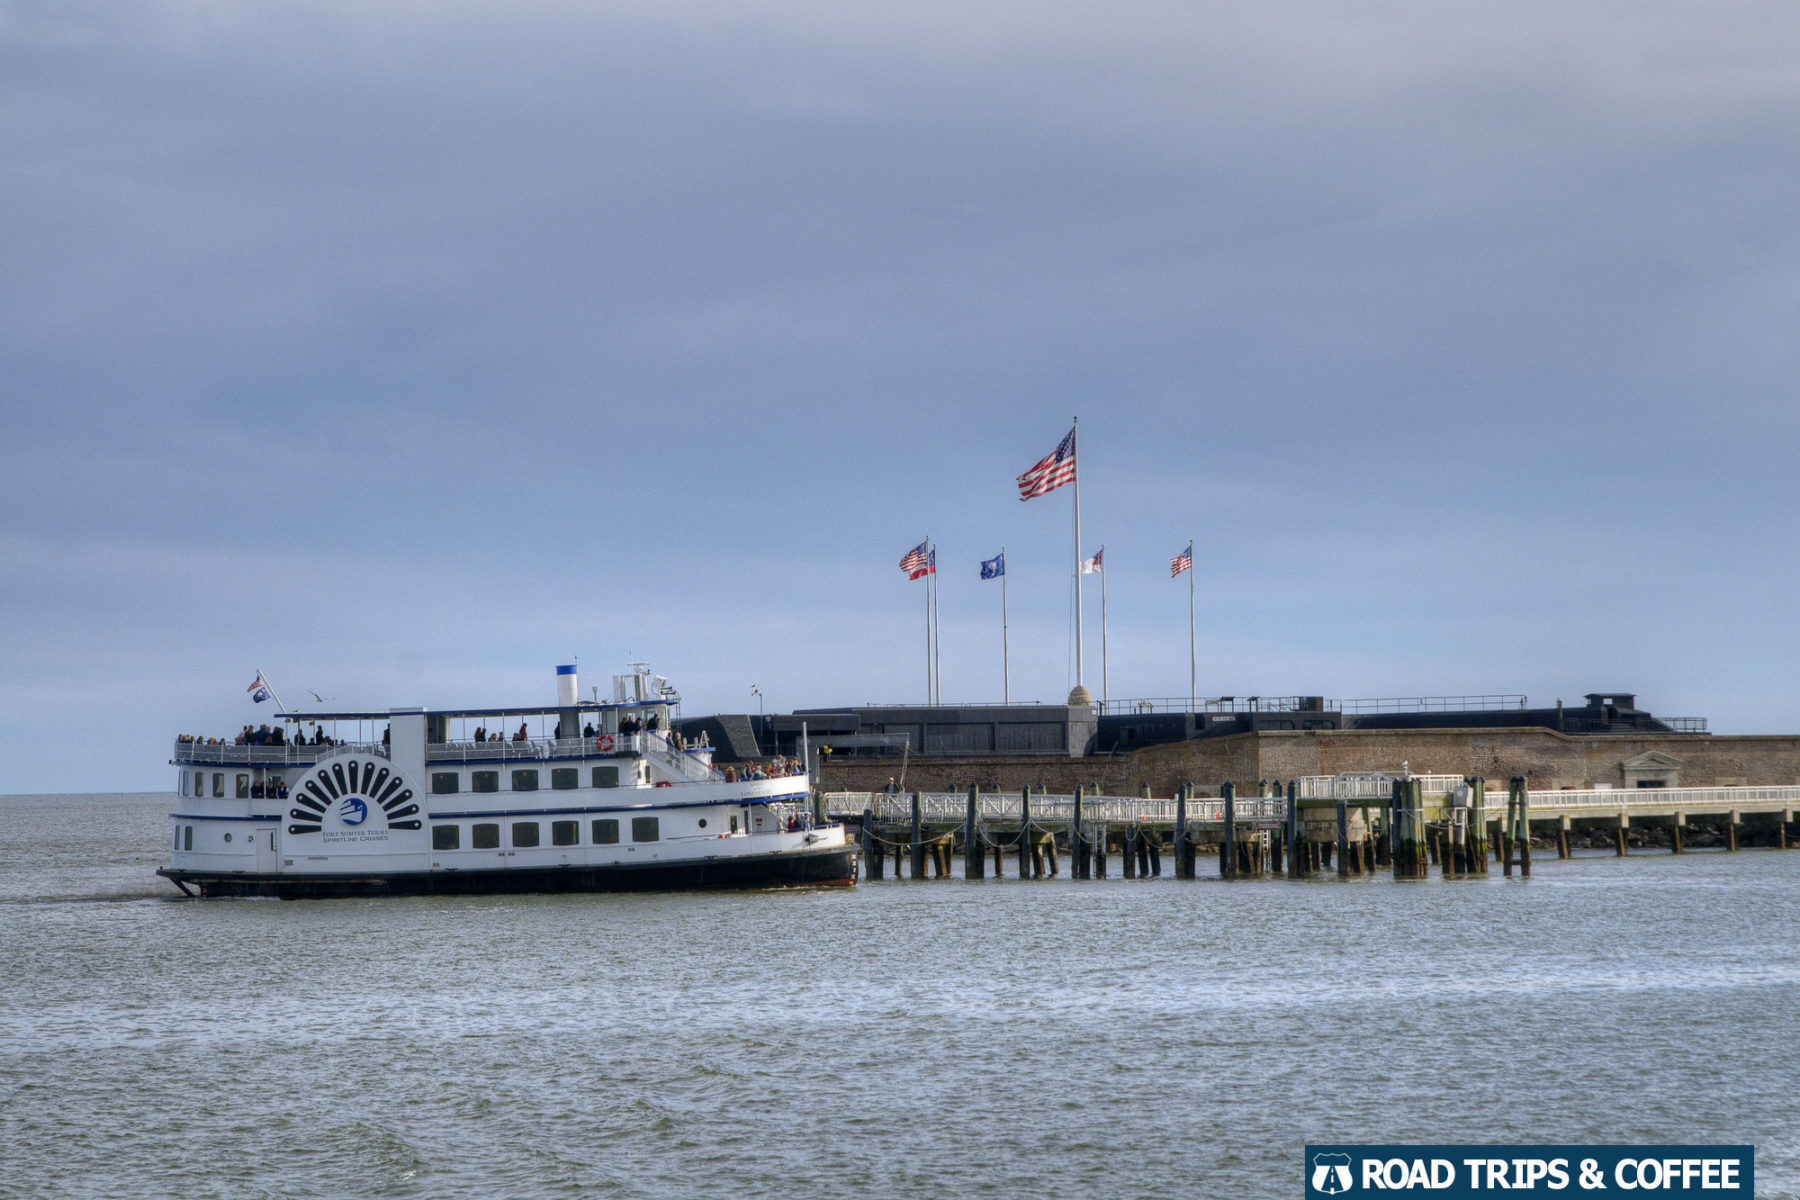 A tour boat from Fort Sumter Tours docks at Fort Sumter & Fort Moultrie National Historical Park in Charleston, South Carolina